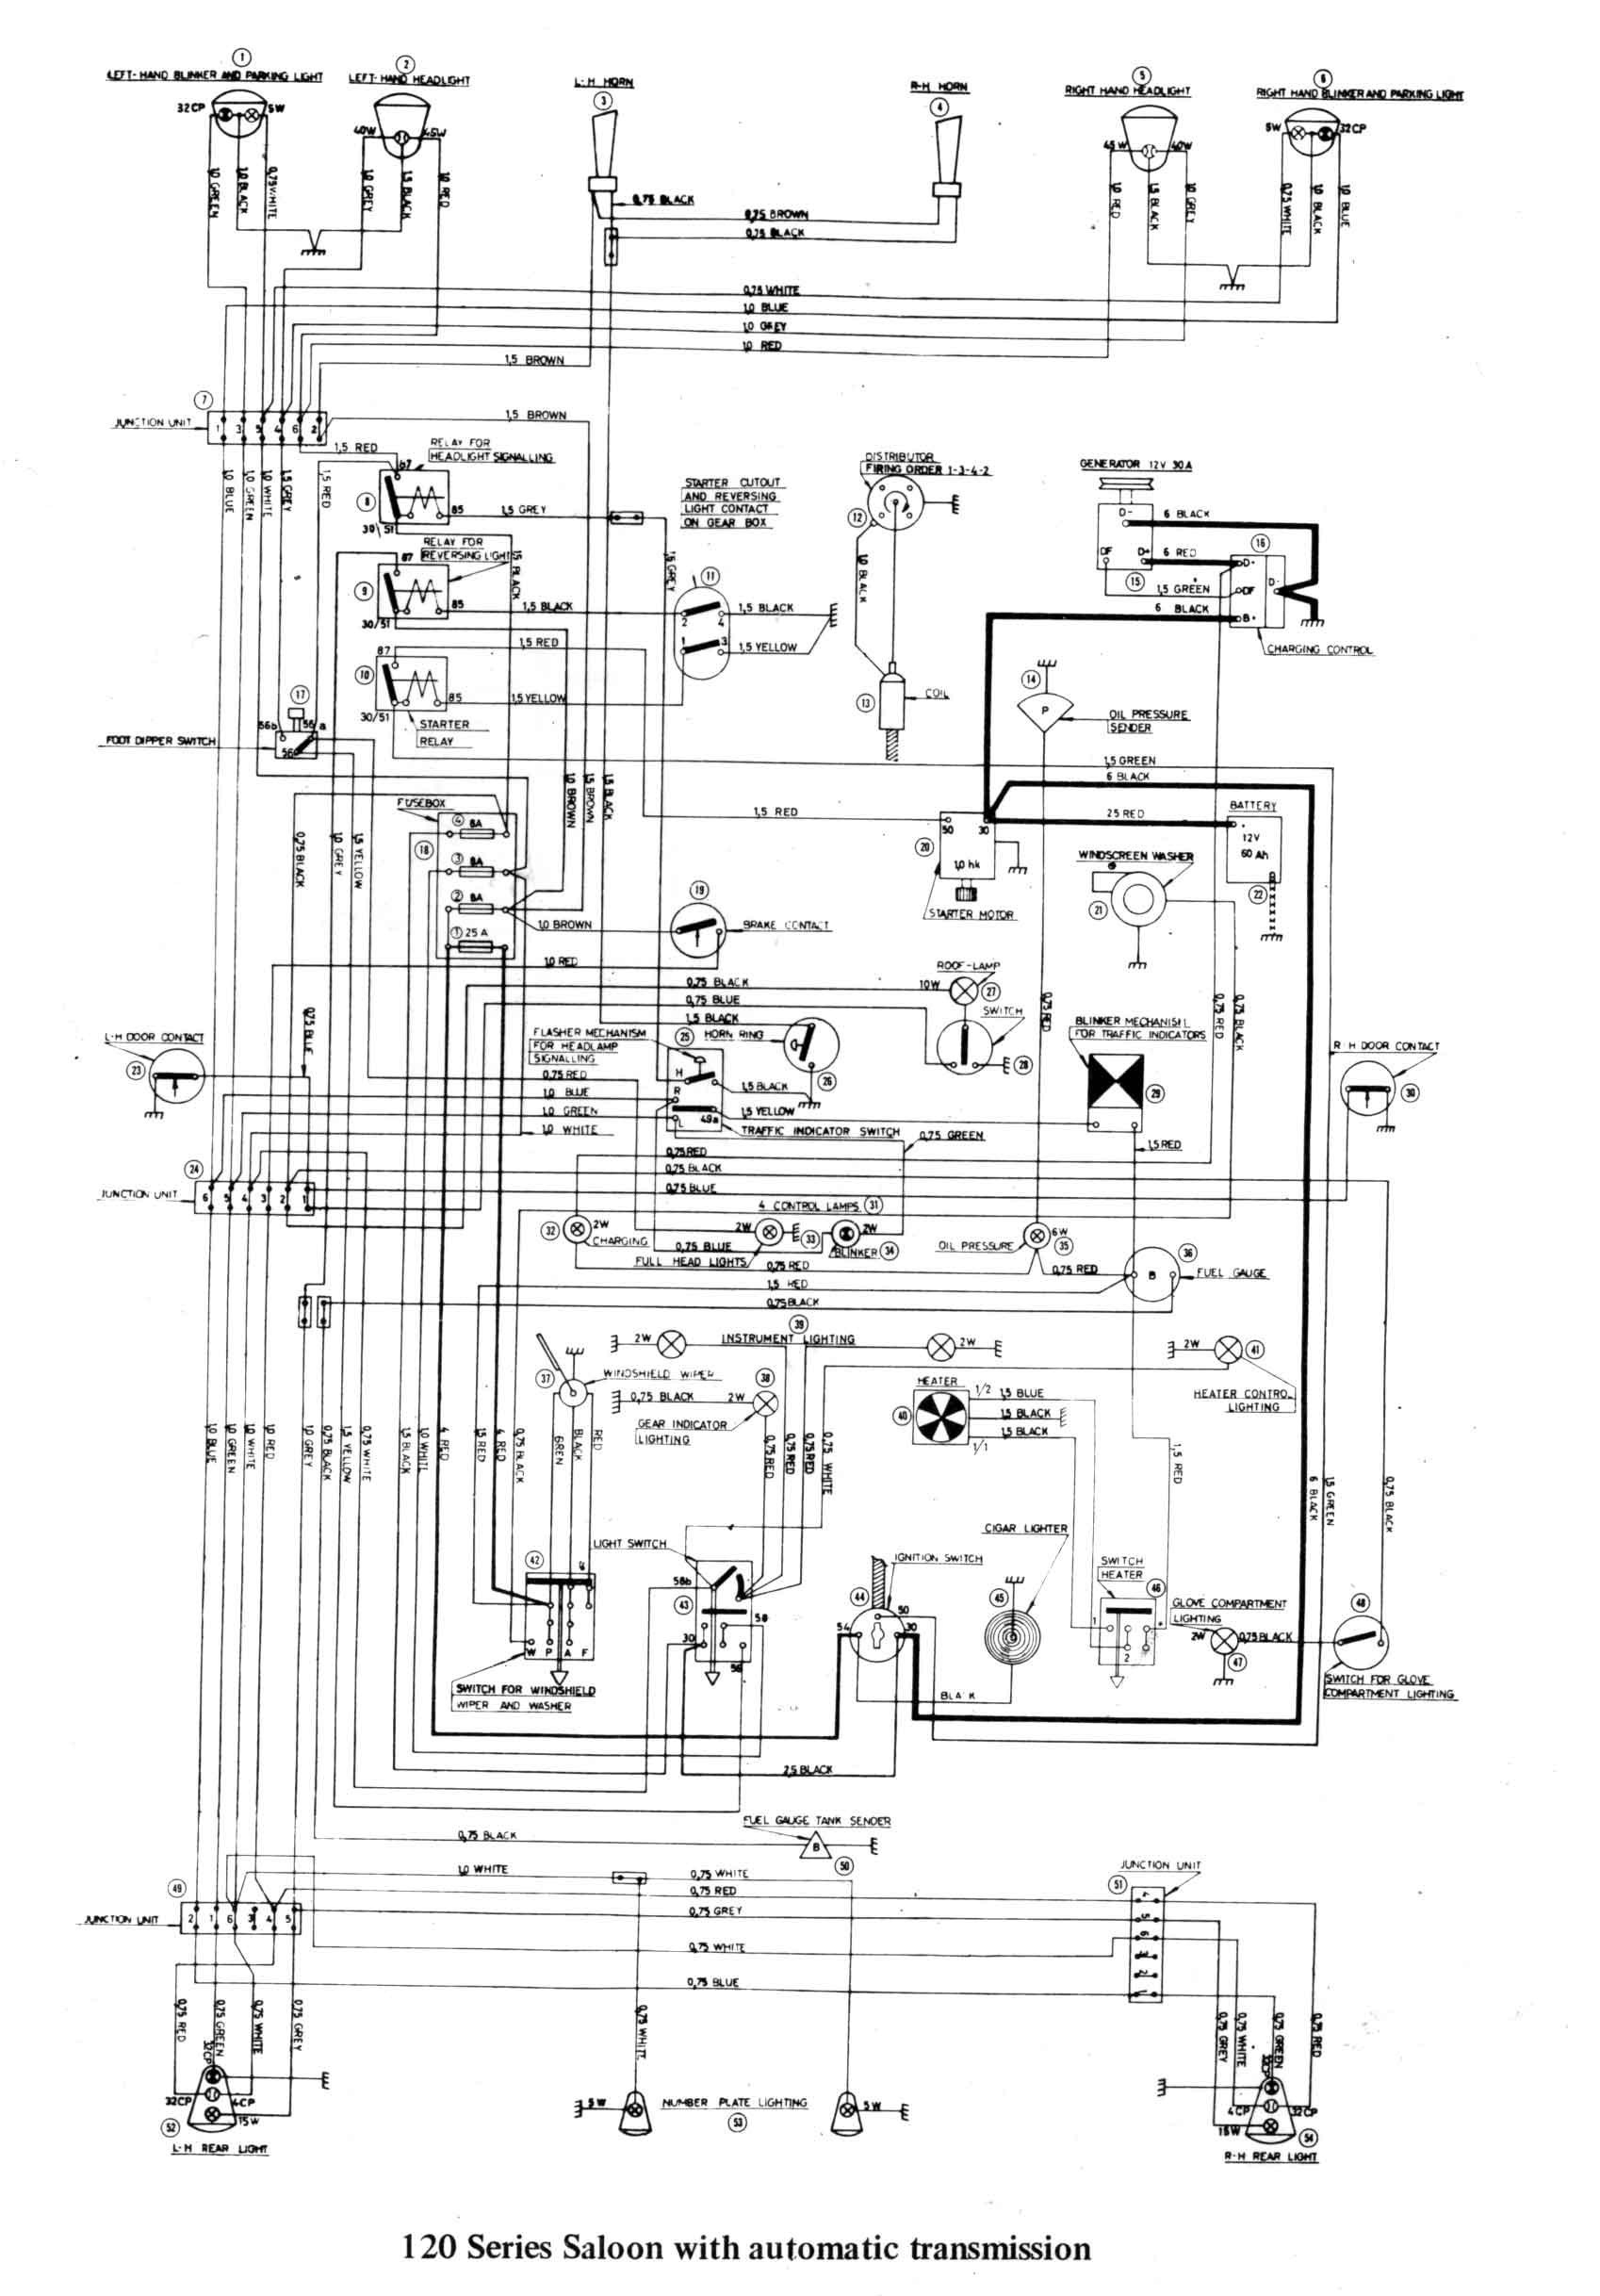 Turn Signal Wiring Diagram Chevy Truck My Chevrolet New Sw